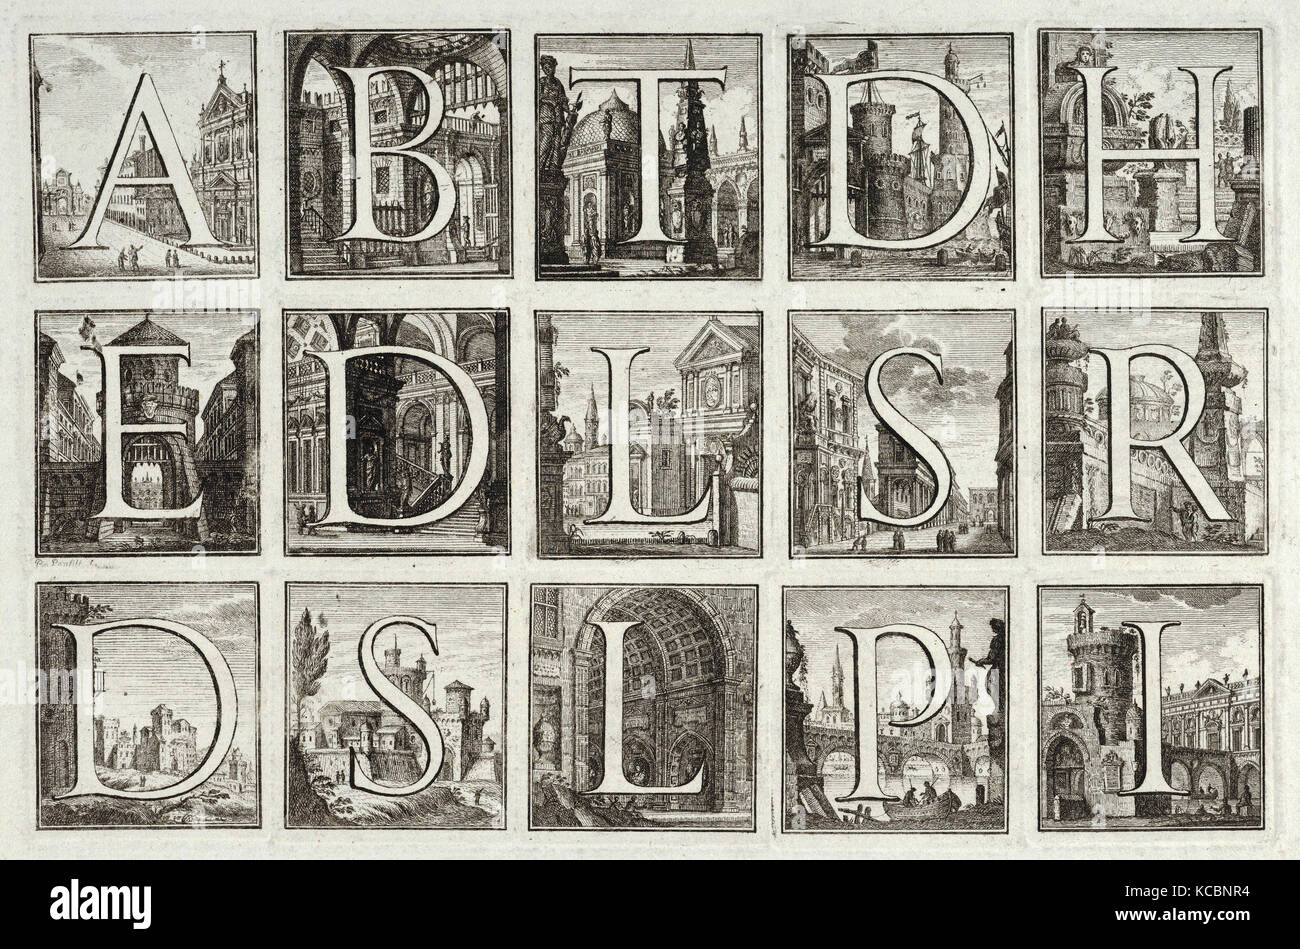 Dessins et gravures, d'impression, de l'alphabet romain contre les milieux architecturaux, de G. P. Zanotti Photo Stock